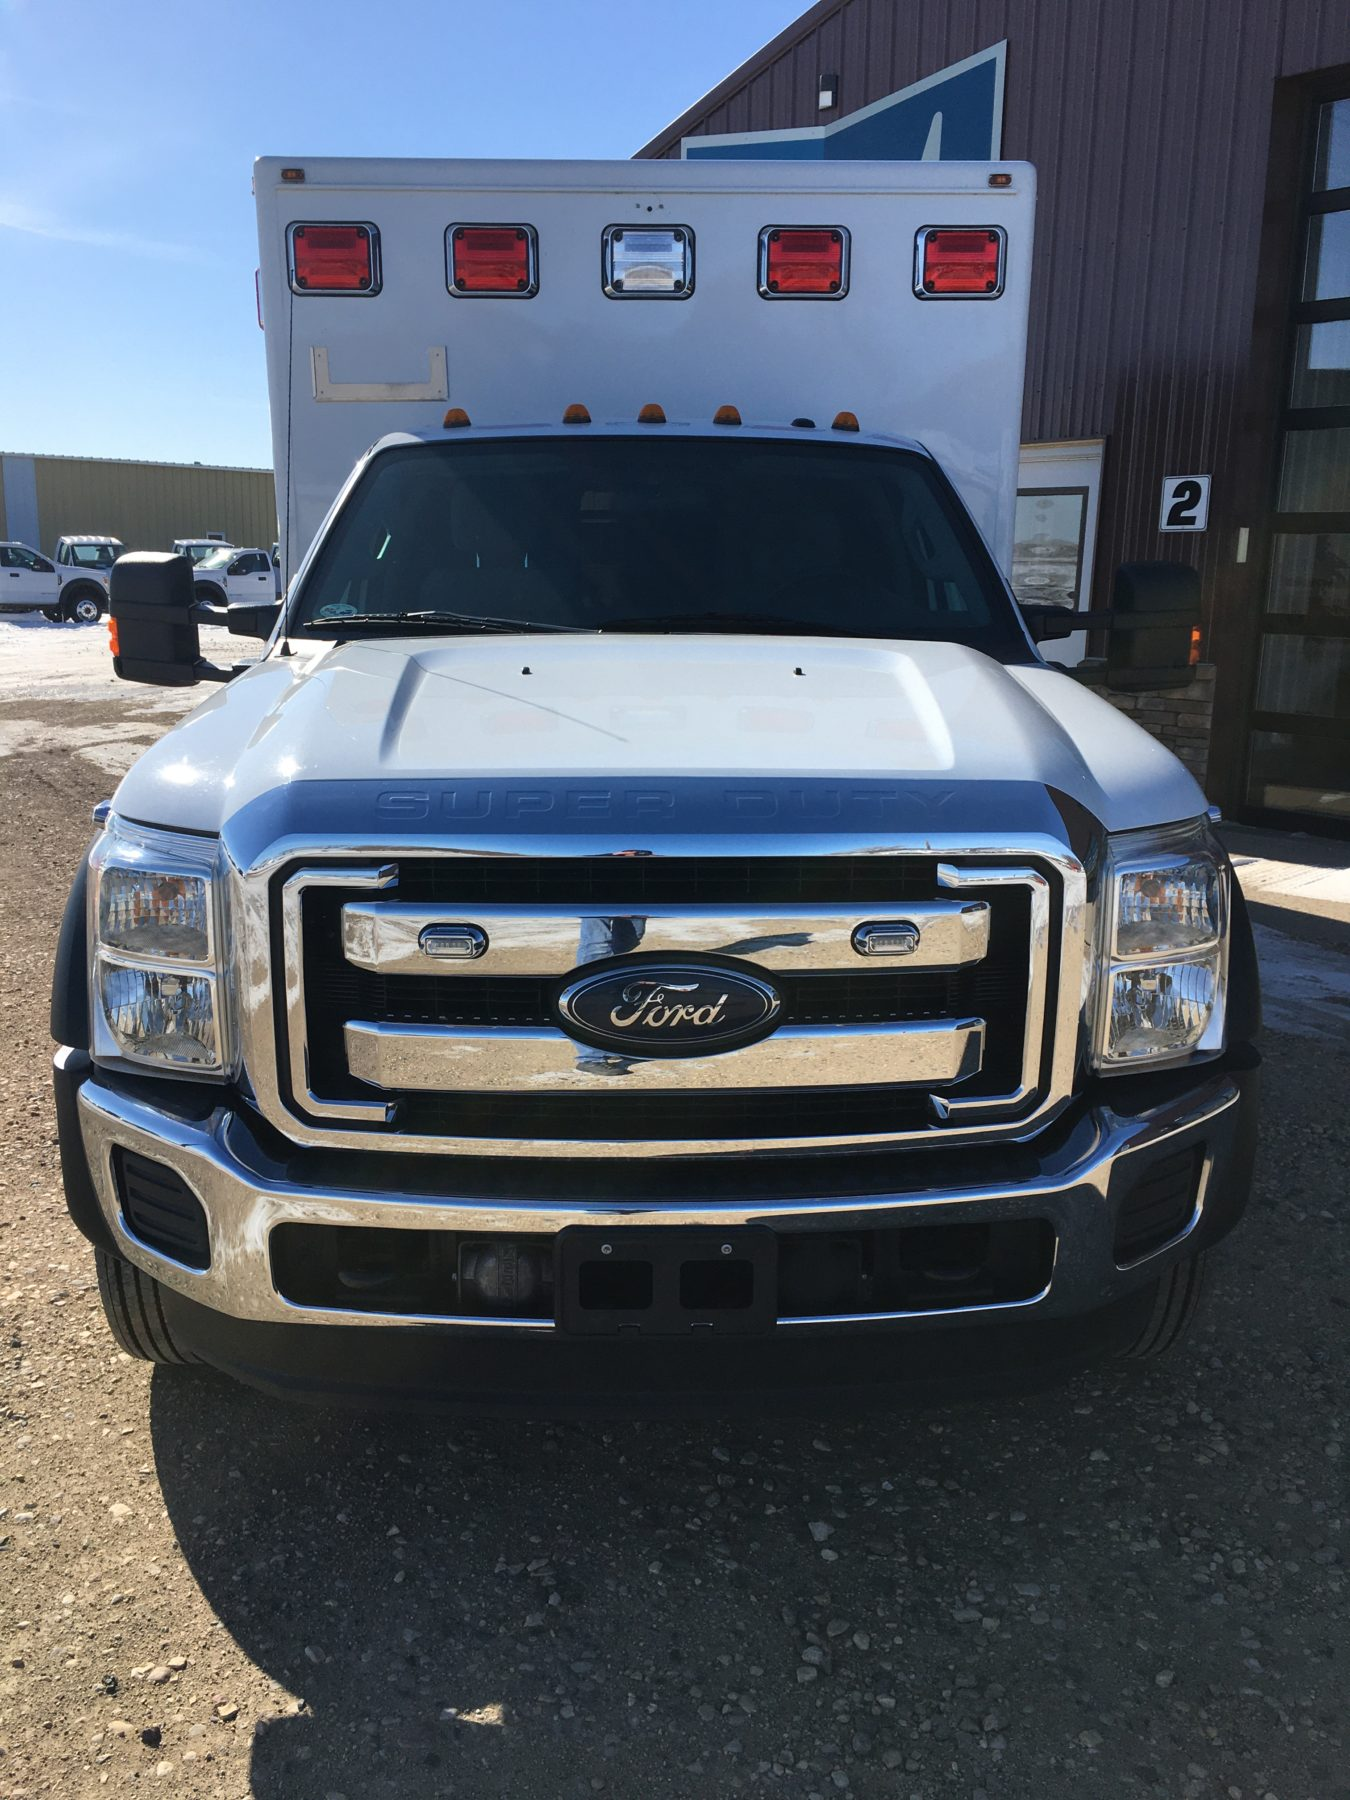 2015 Ford F450 4x4 Heavy Duty Ambulance For Sale – Picture 7